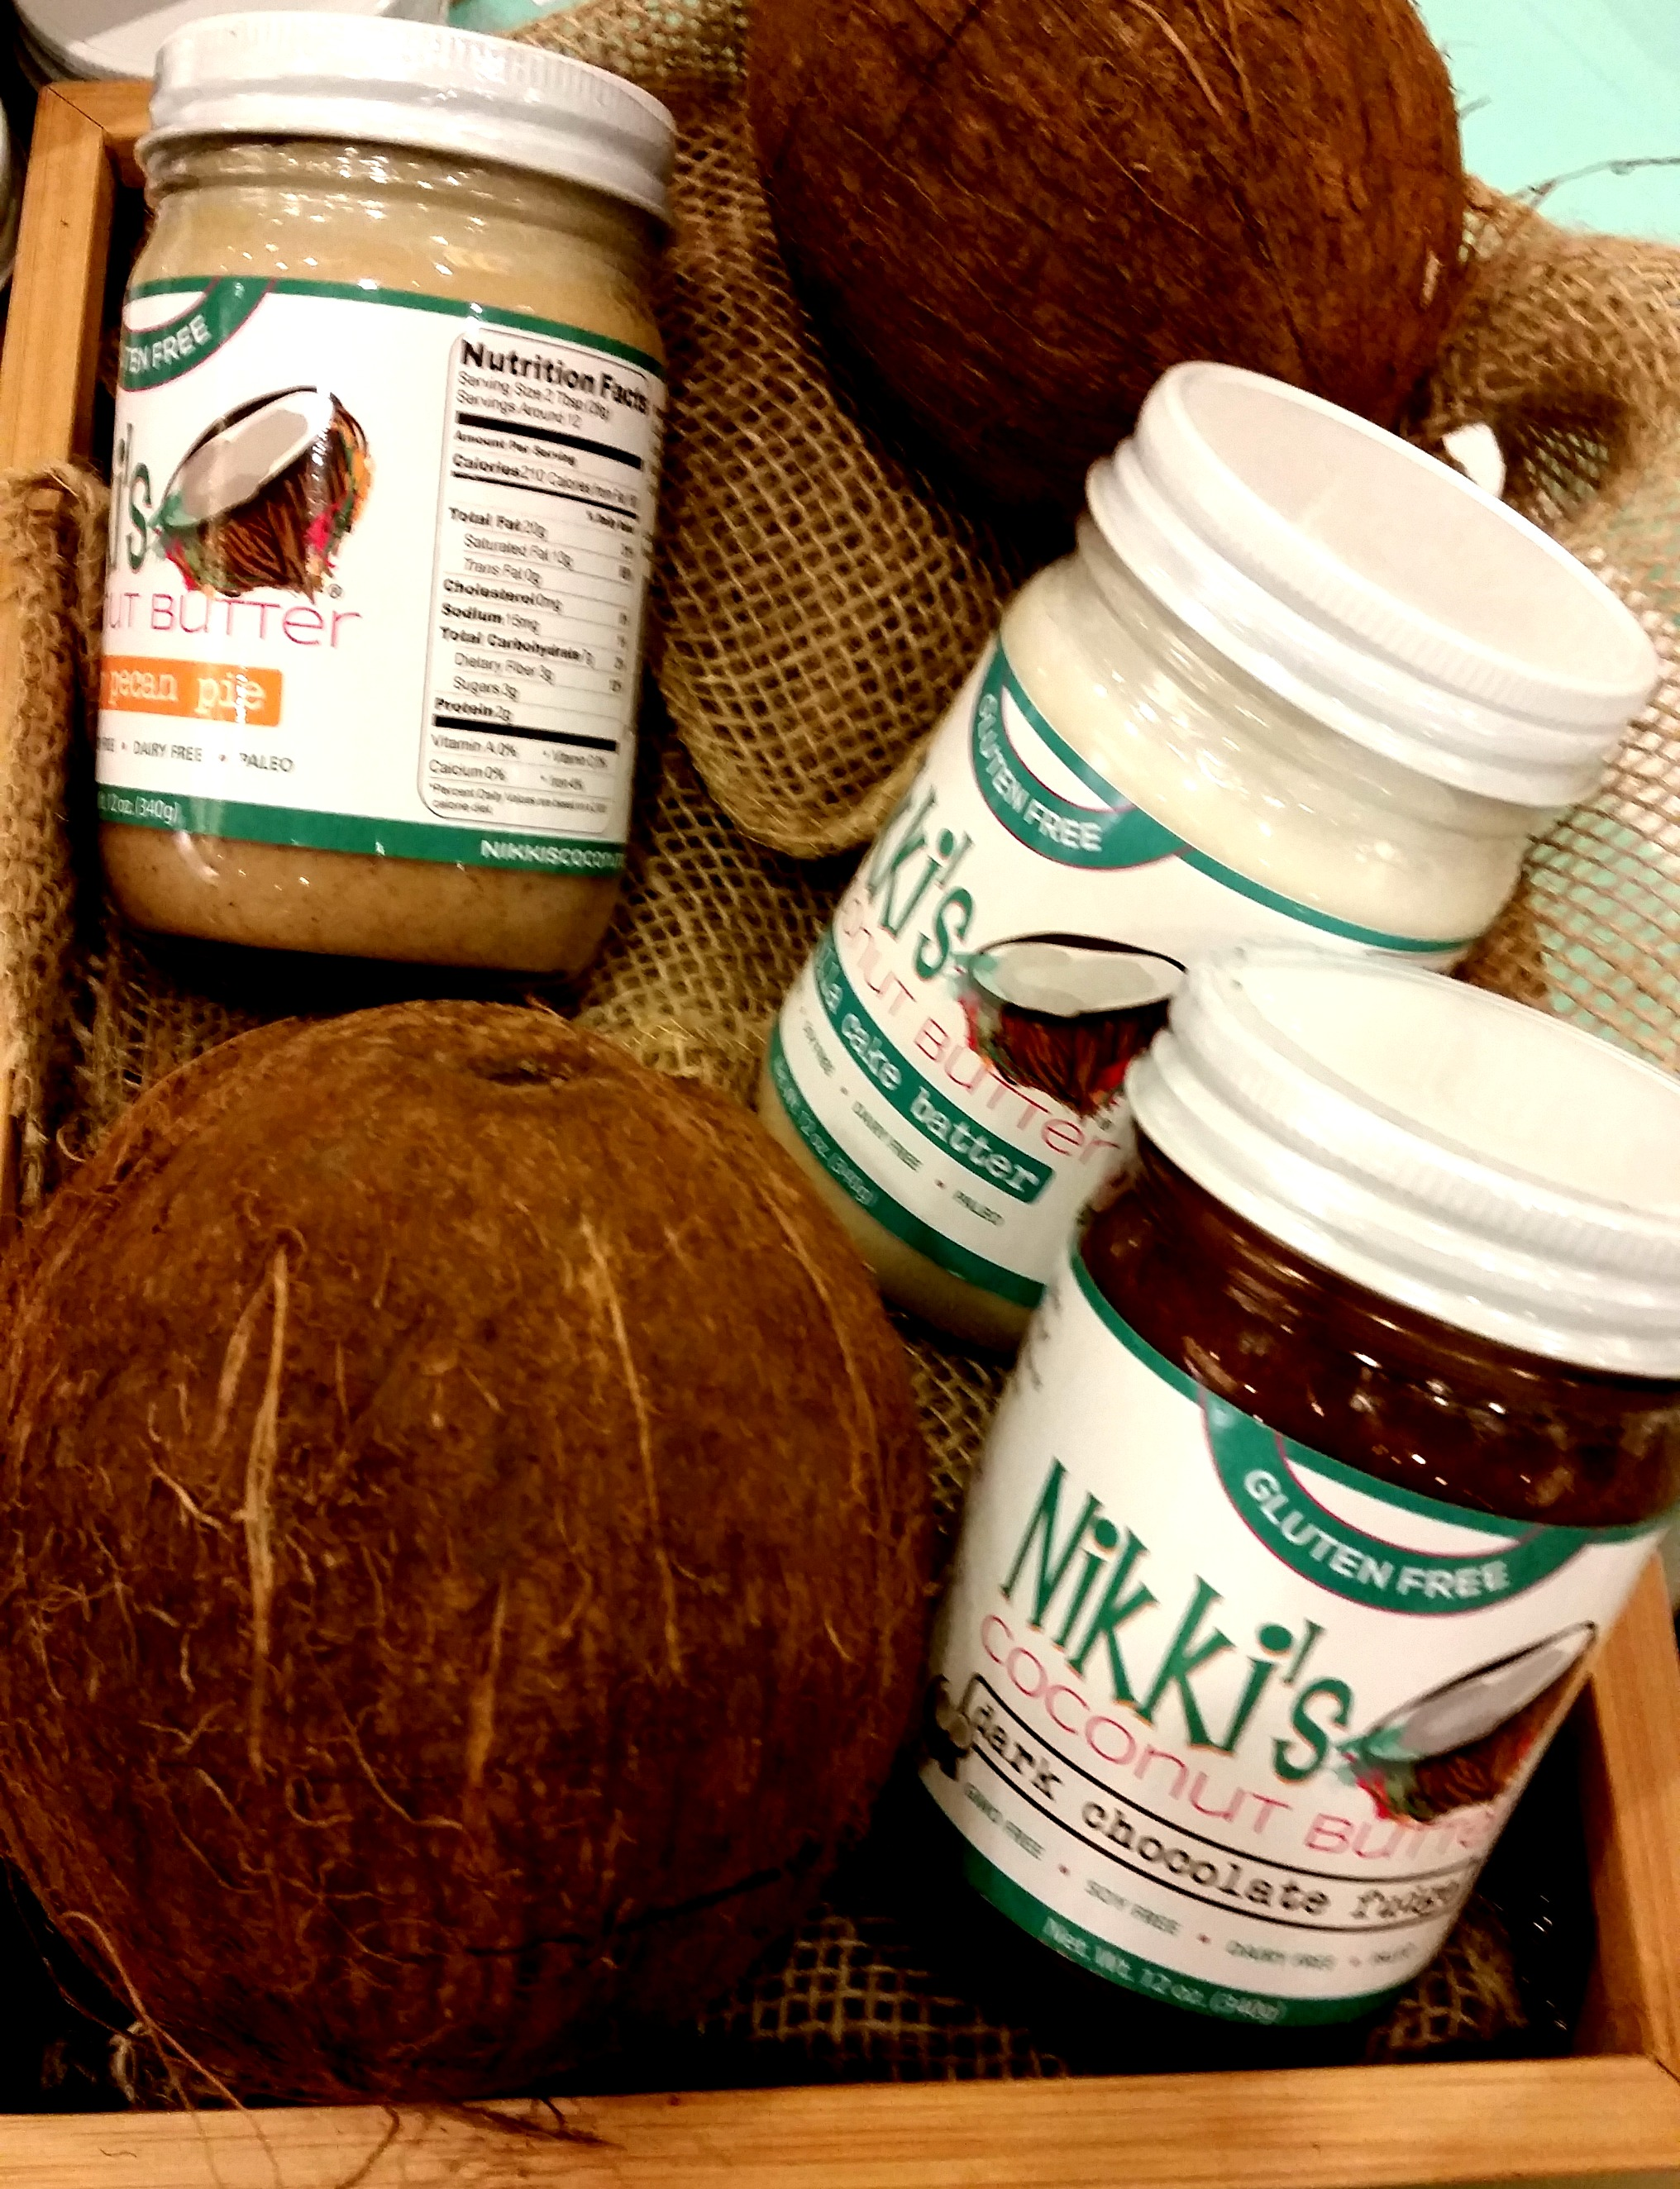 Nikkis Coconut Butter